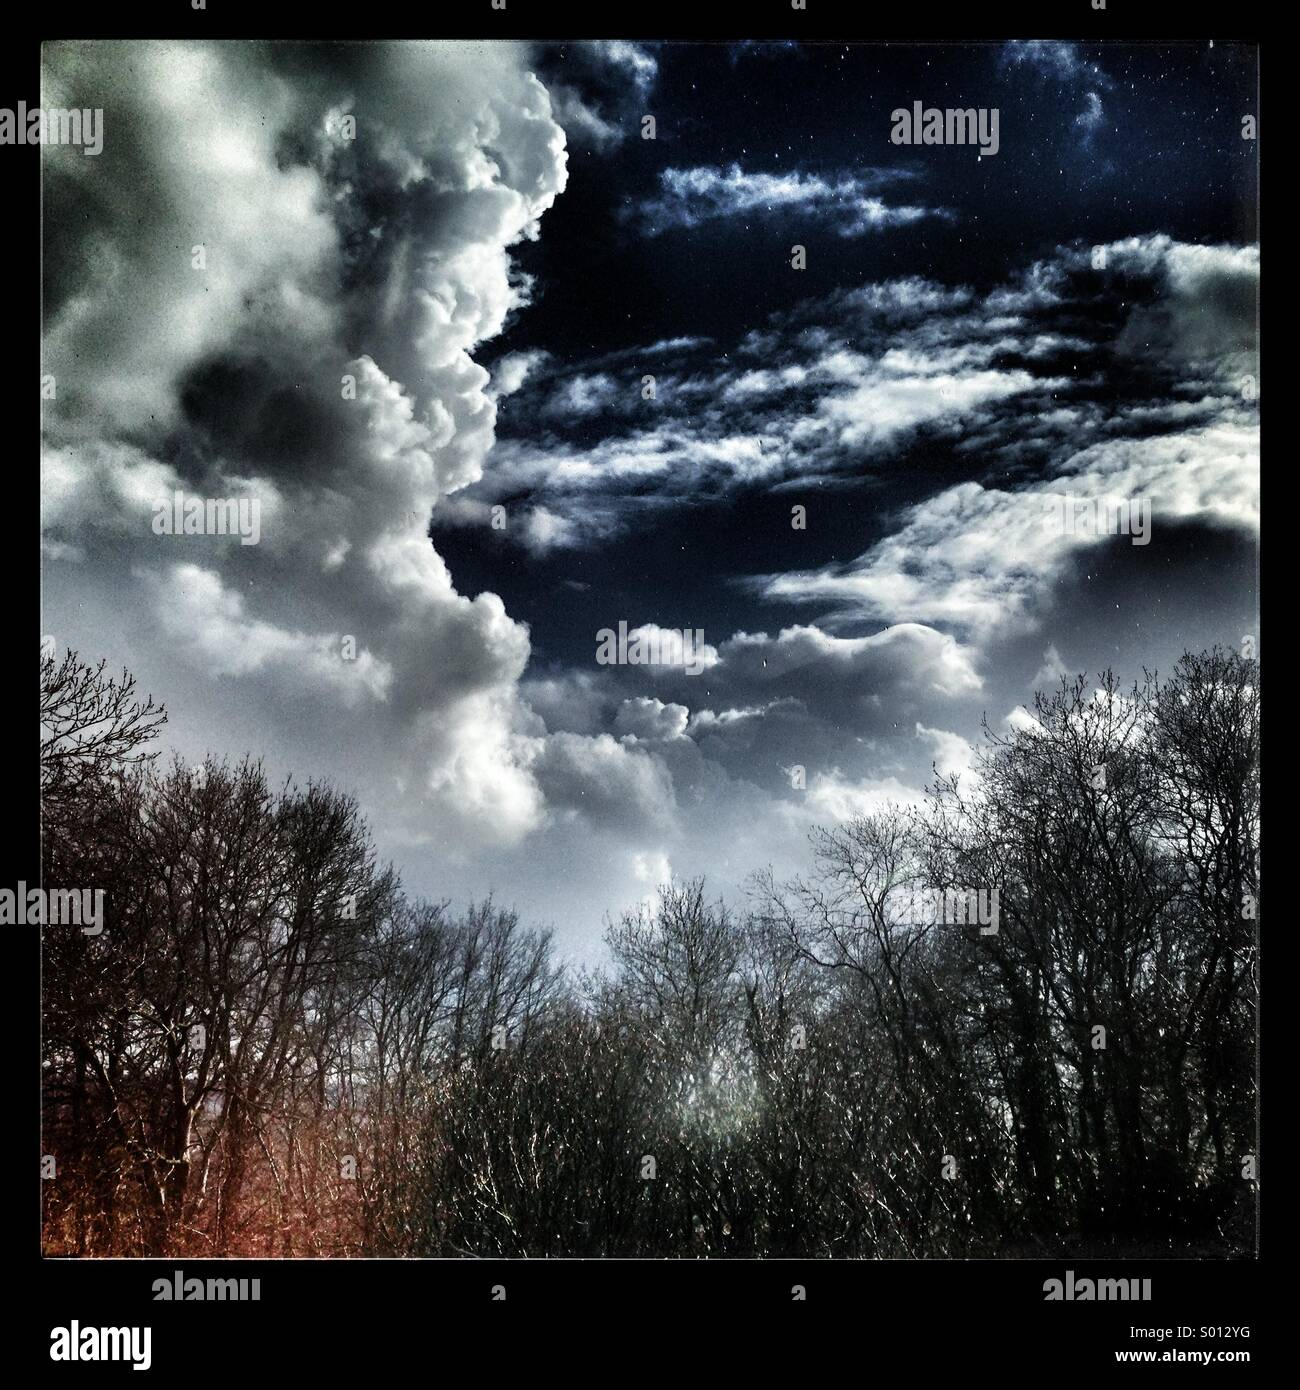 Storm over the woods - Stock Image